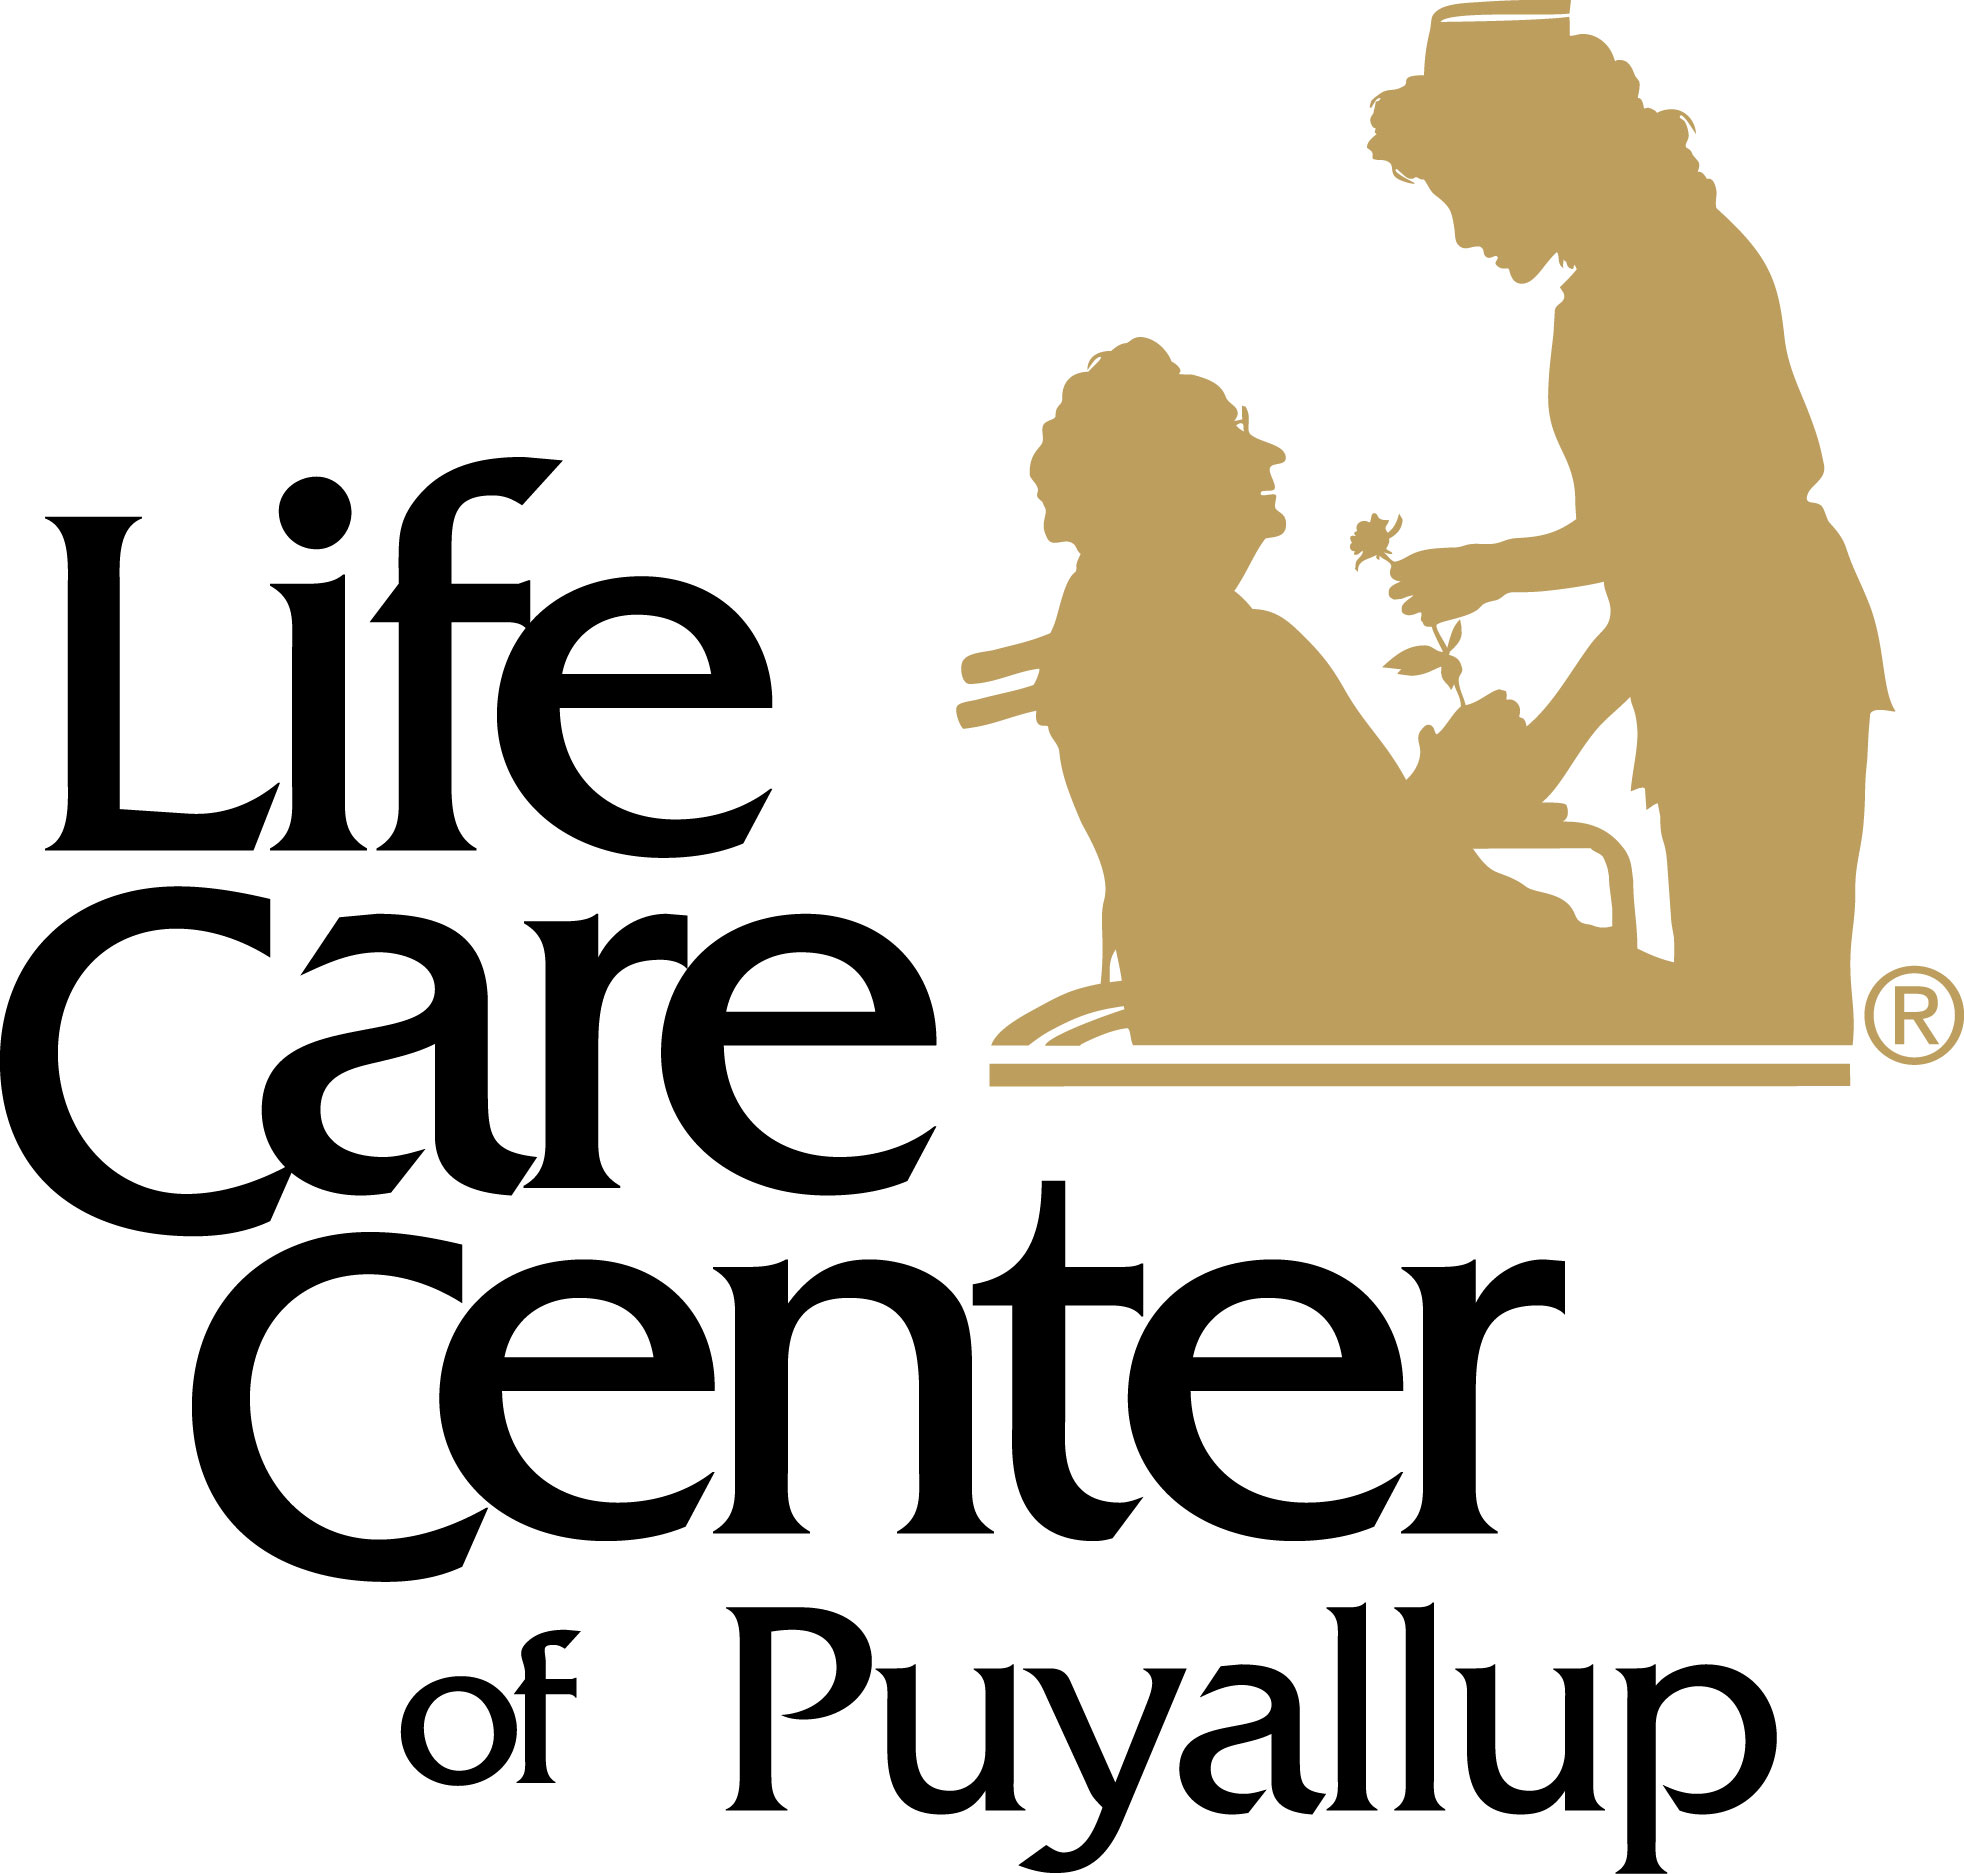 Life Care Center of Puyallup